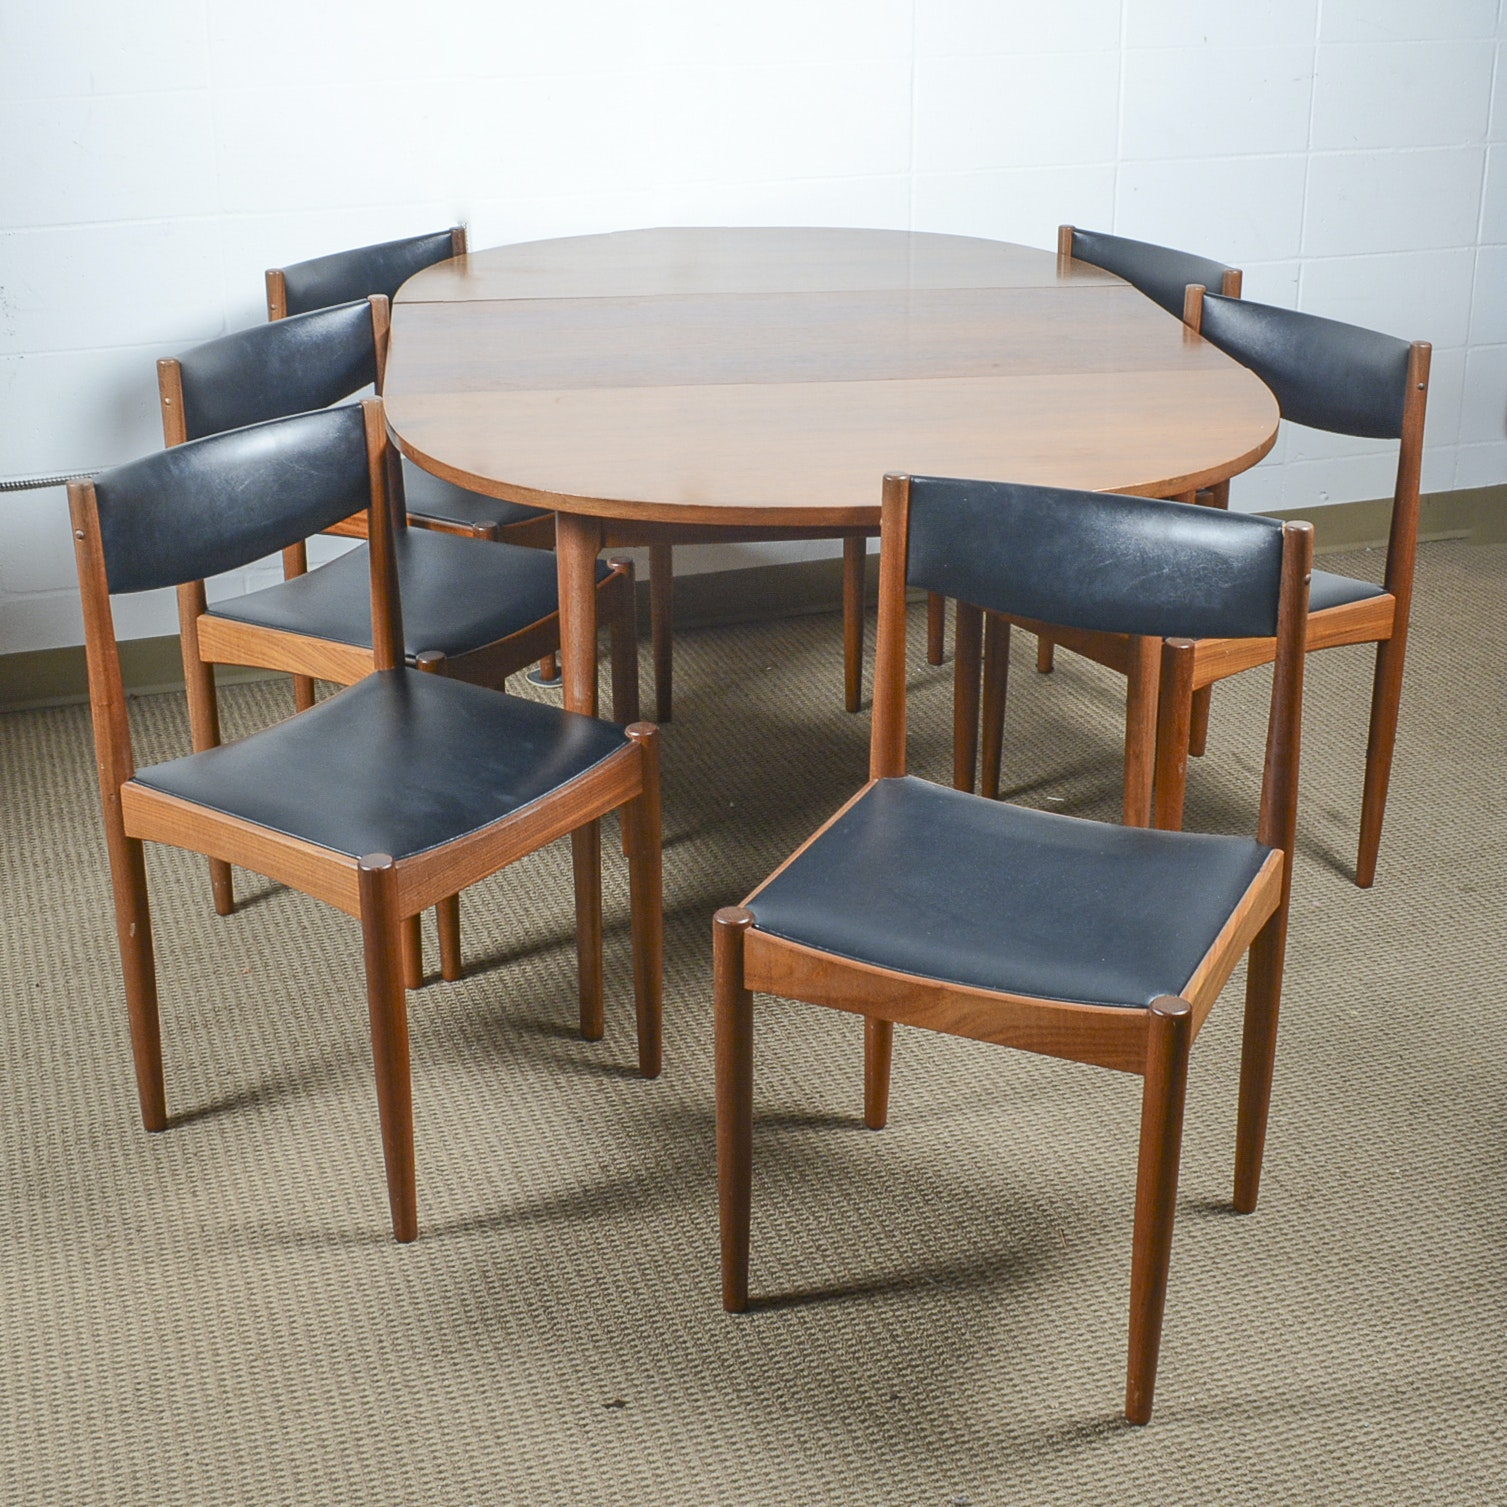 Vintage Danish Modern Teak Dining Table and Chairs EBTH